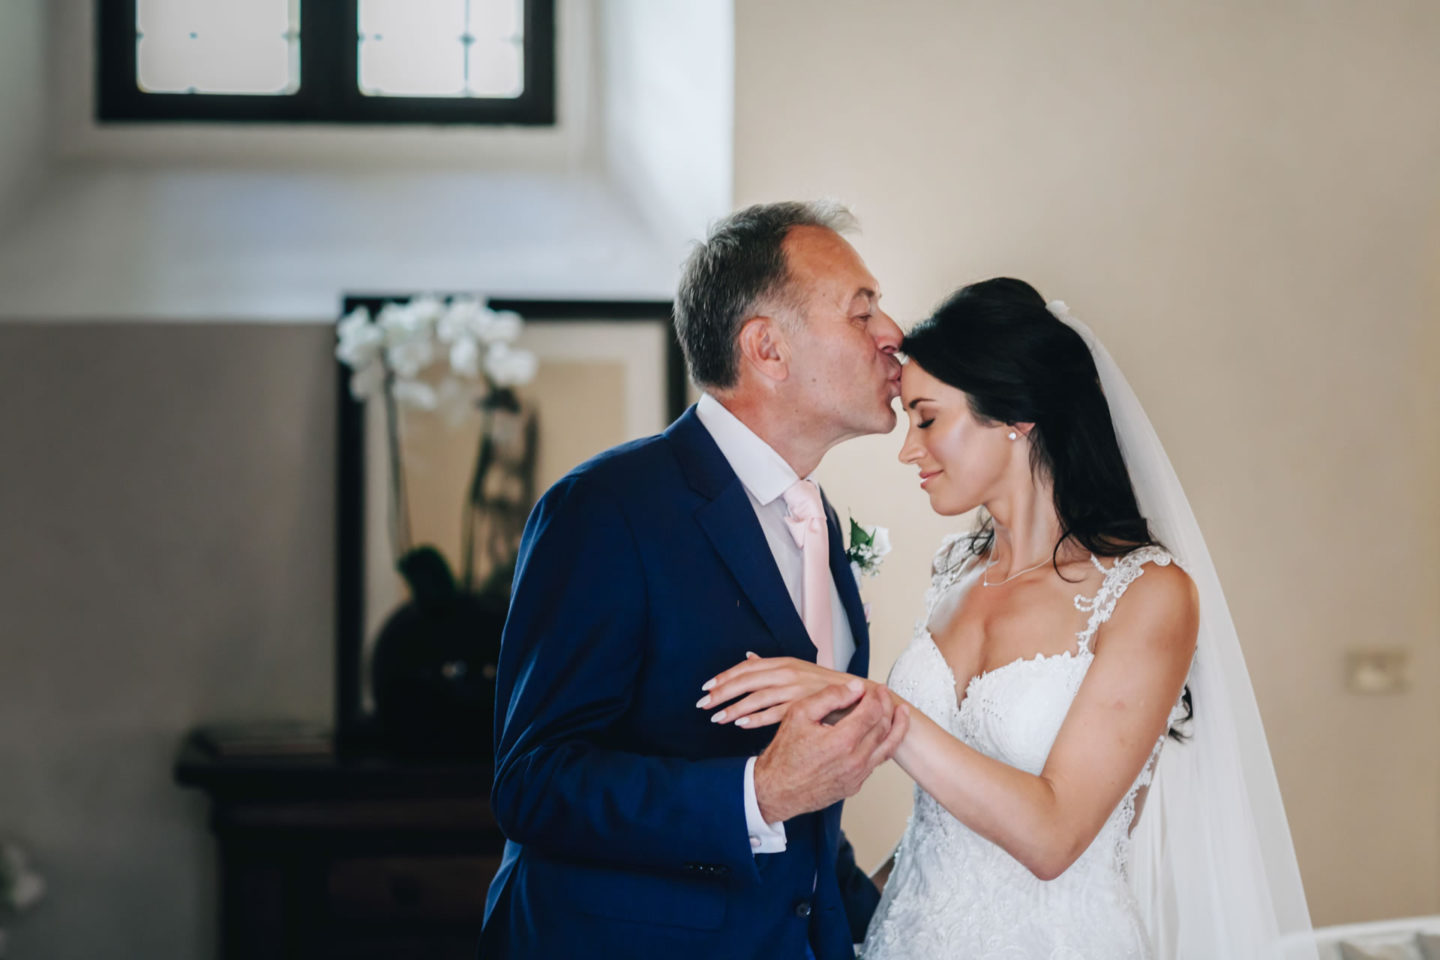 Father :: Crazy wedding at Vincigliata Castle and Villa San Michele :: Luxury wedding photography - 10 :: Father